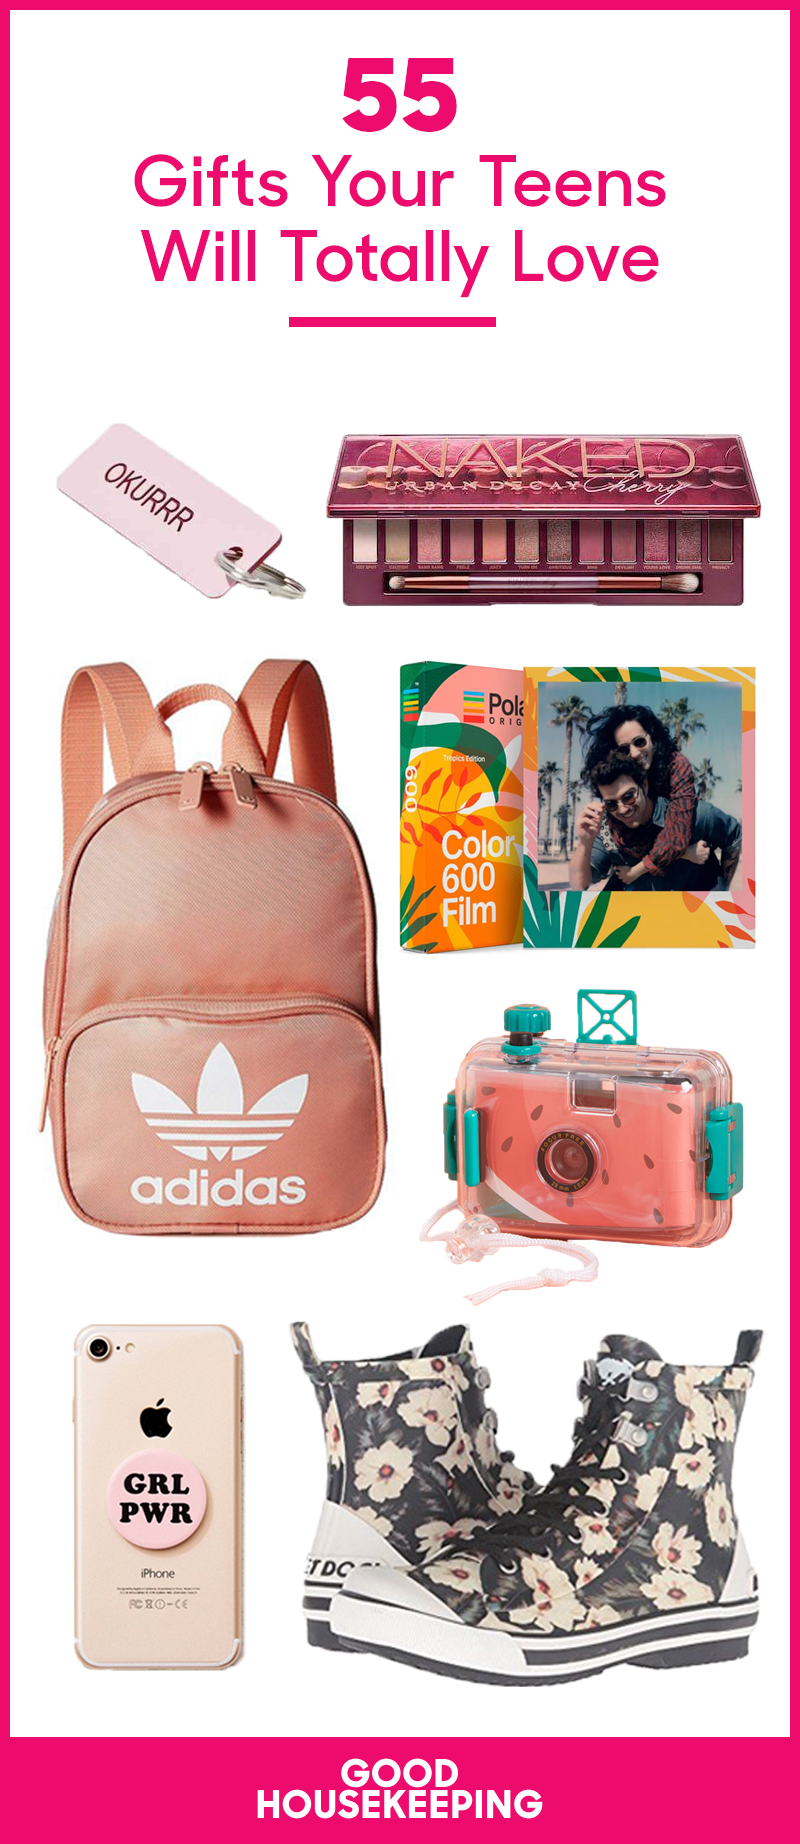 60+ Cool Gifts for Teens - Top Boy & Girl Teenager Christmas Gift Ideas